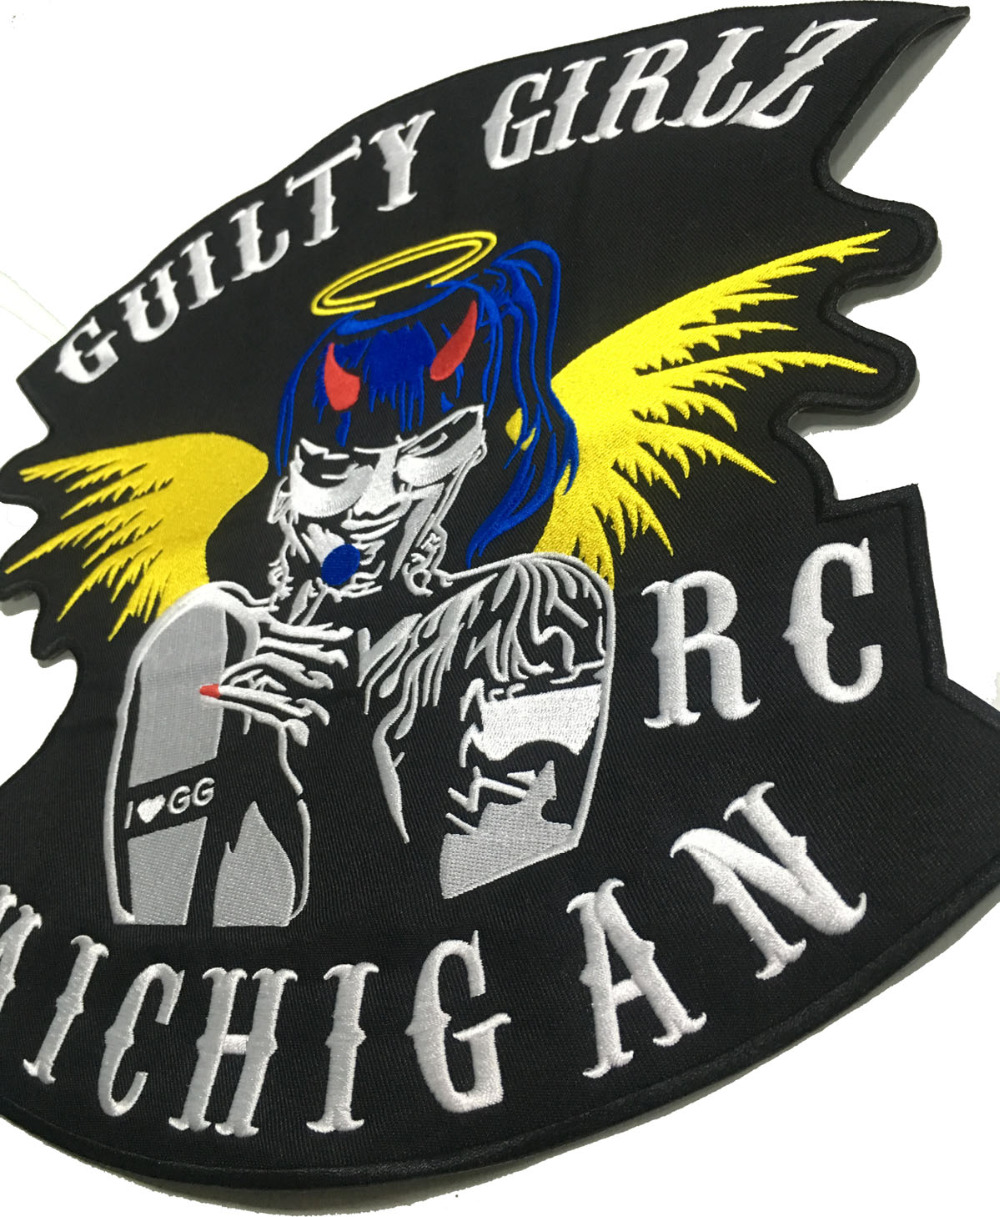 LTY GIRLSBIKER RC MICHIGAN MOTORCYCLE CLUB PATCH (3)